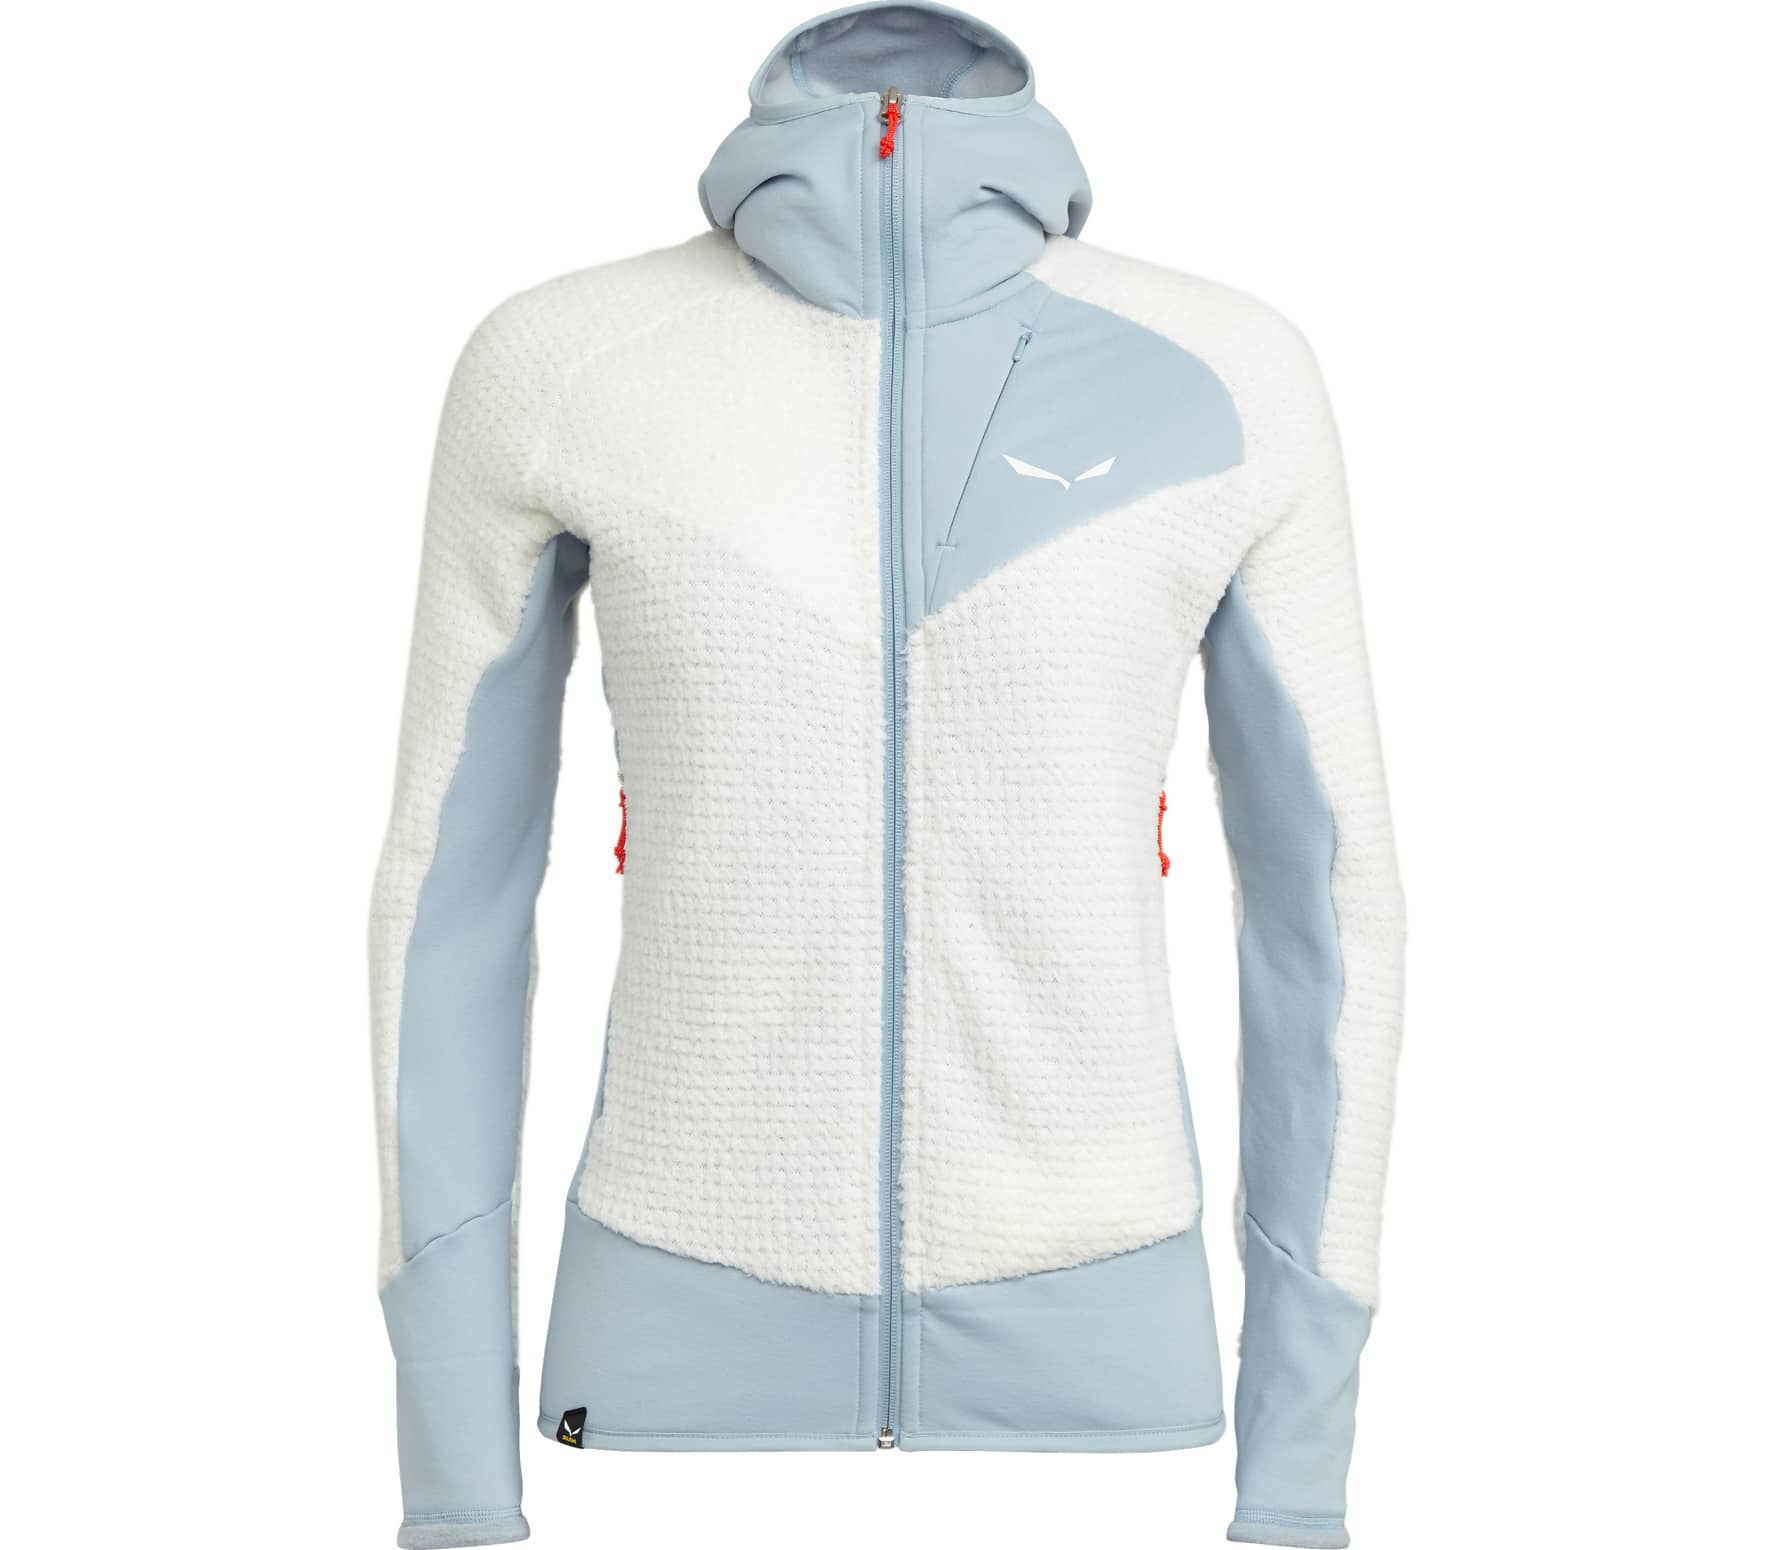 Salewa - Ortles Ptc Highloft women's Power Stretch fleece jacket (white/grey) - M (38)